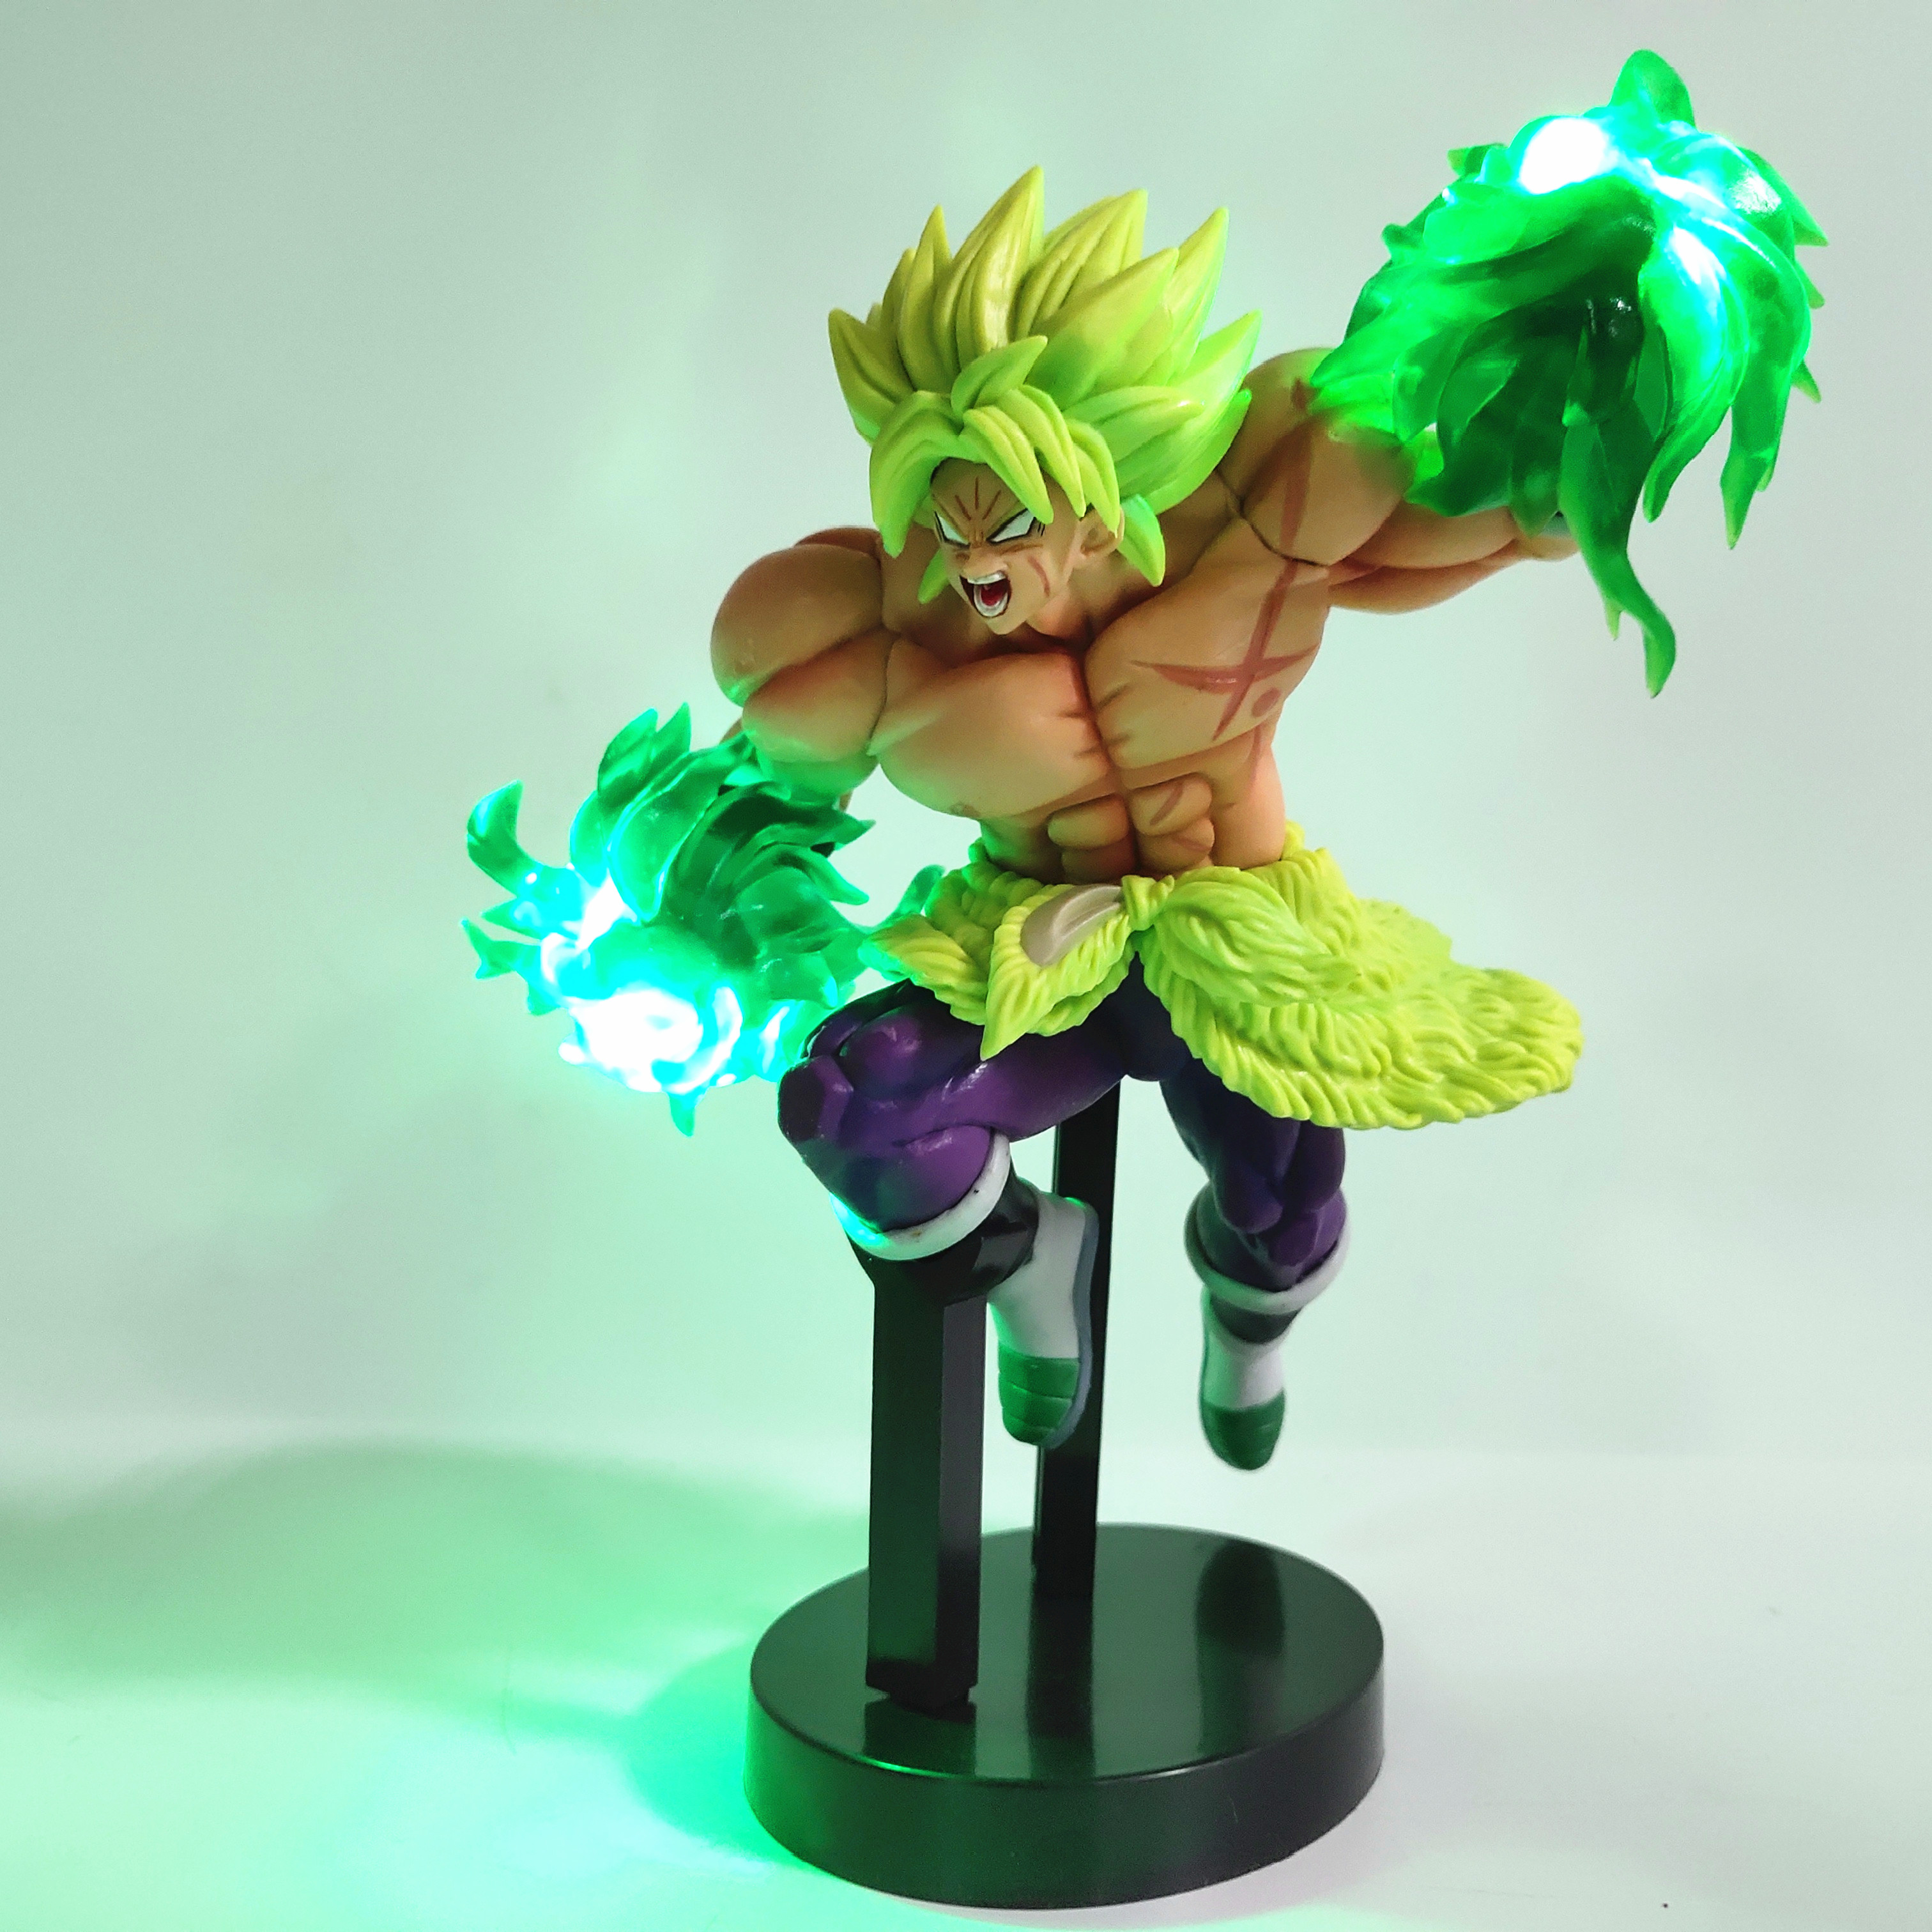 Dragon Ball Z Broly with Led Light Effect Action Figure 21cm 4